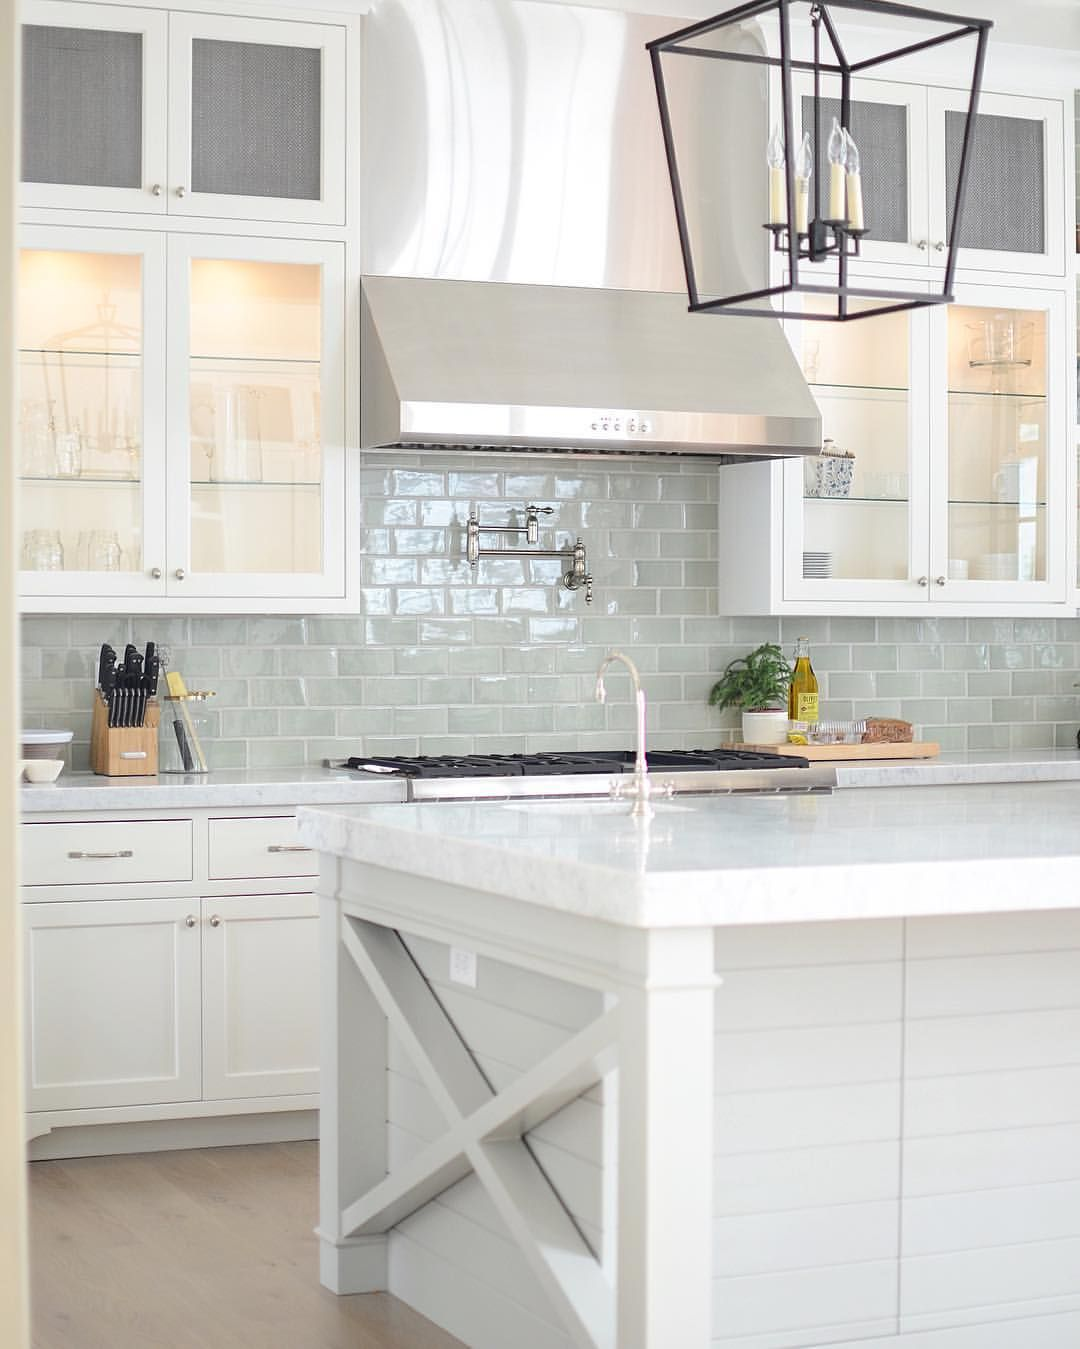 White Kitchen White Floor Bright White Kitchen With Pale Blue Subway Tile Backsplash